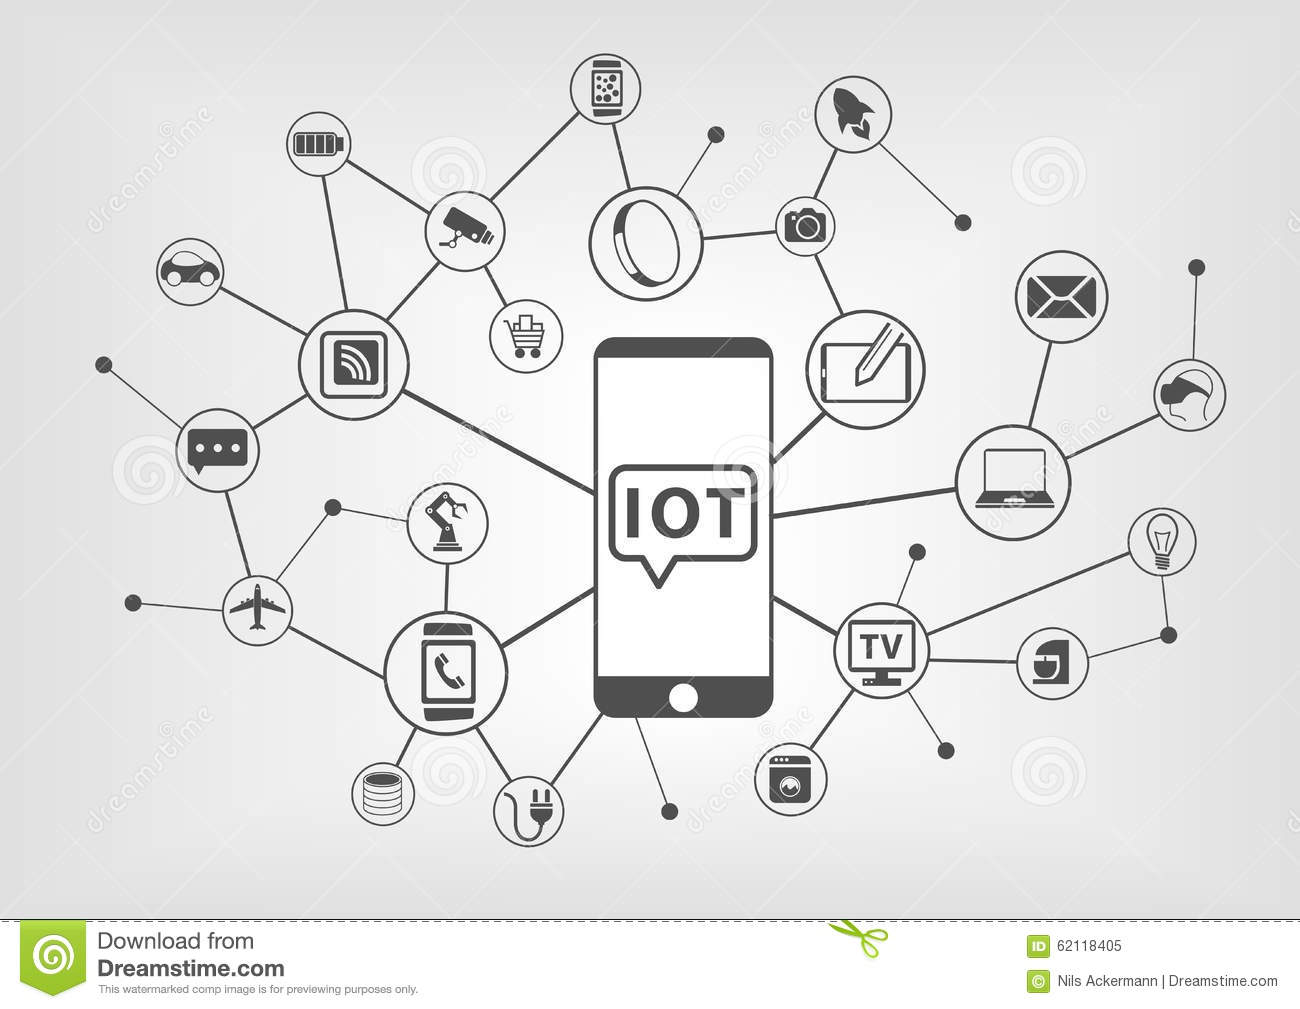 Internet Of Things (IOT) Concept Of Connected Devices With Smart ...